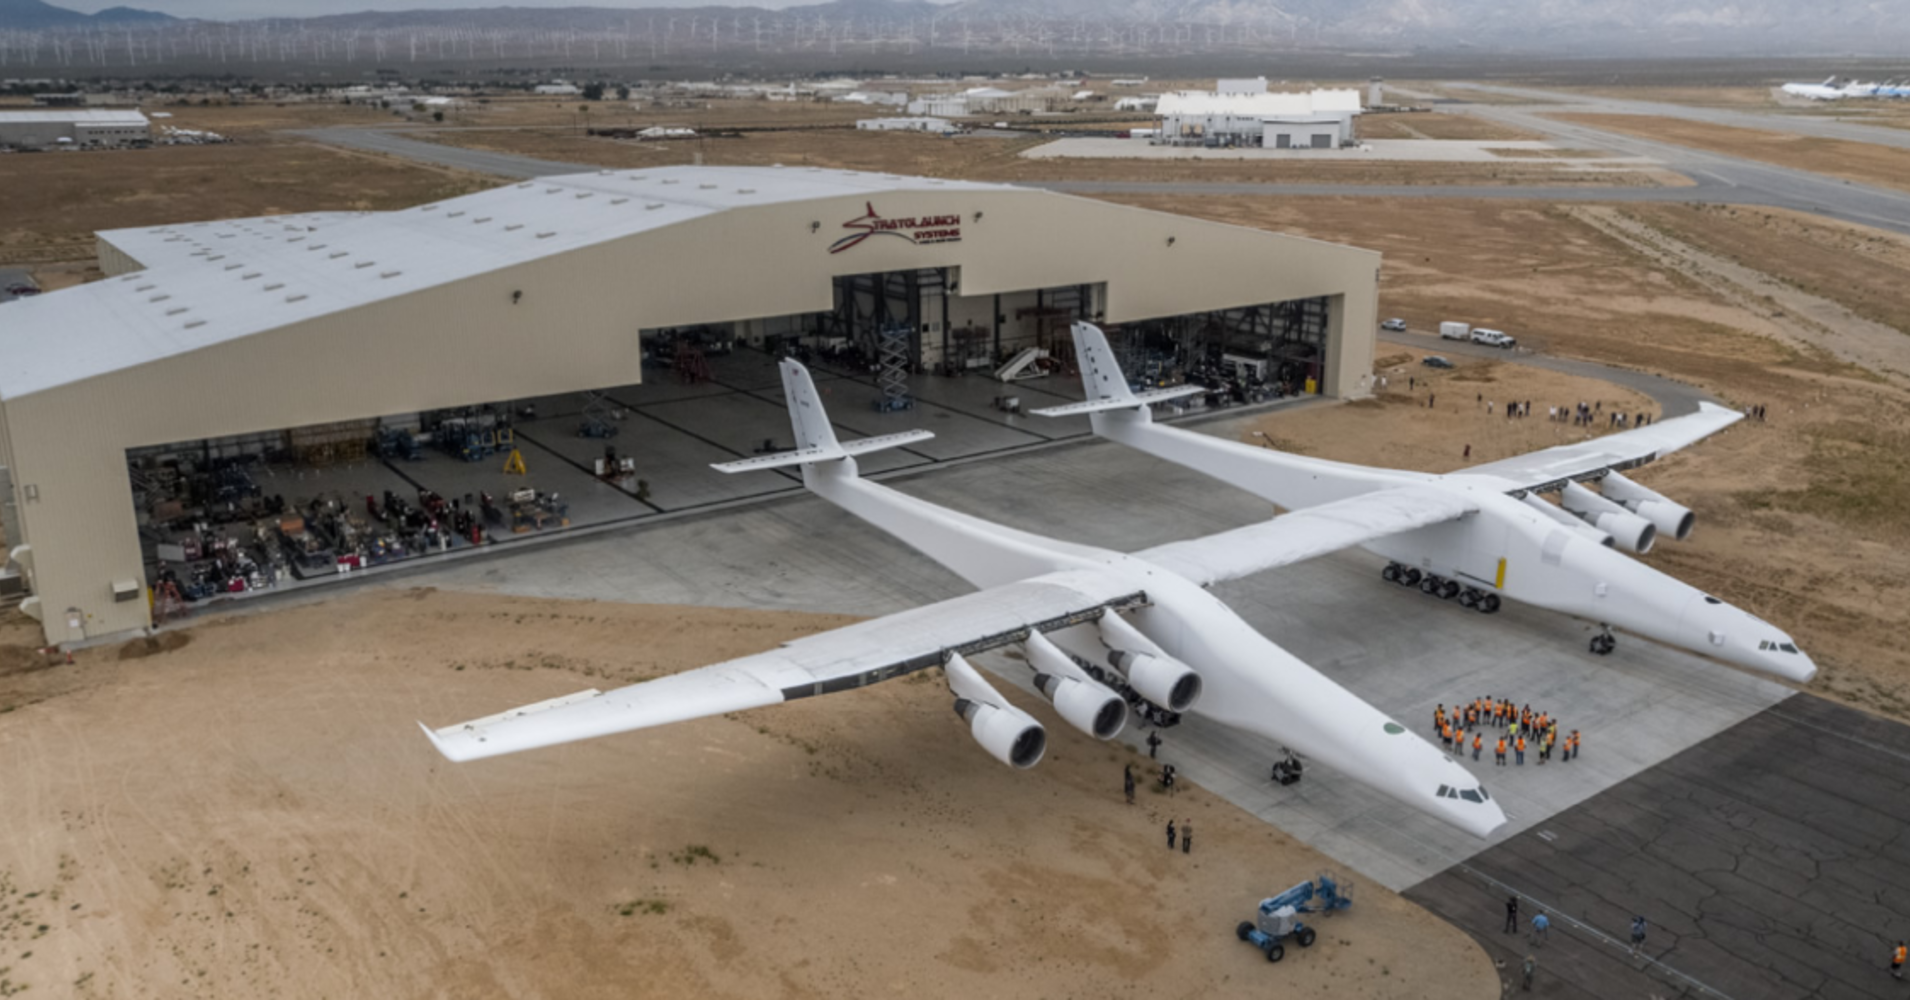 World's biggest airplane, built for rockets